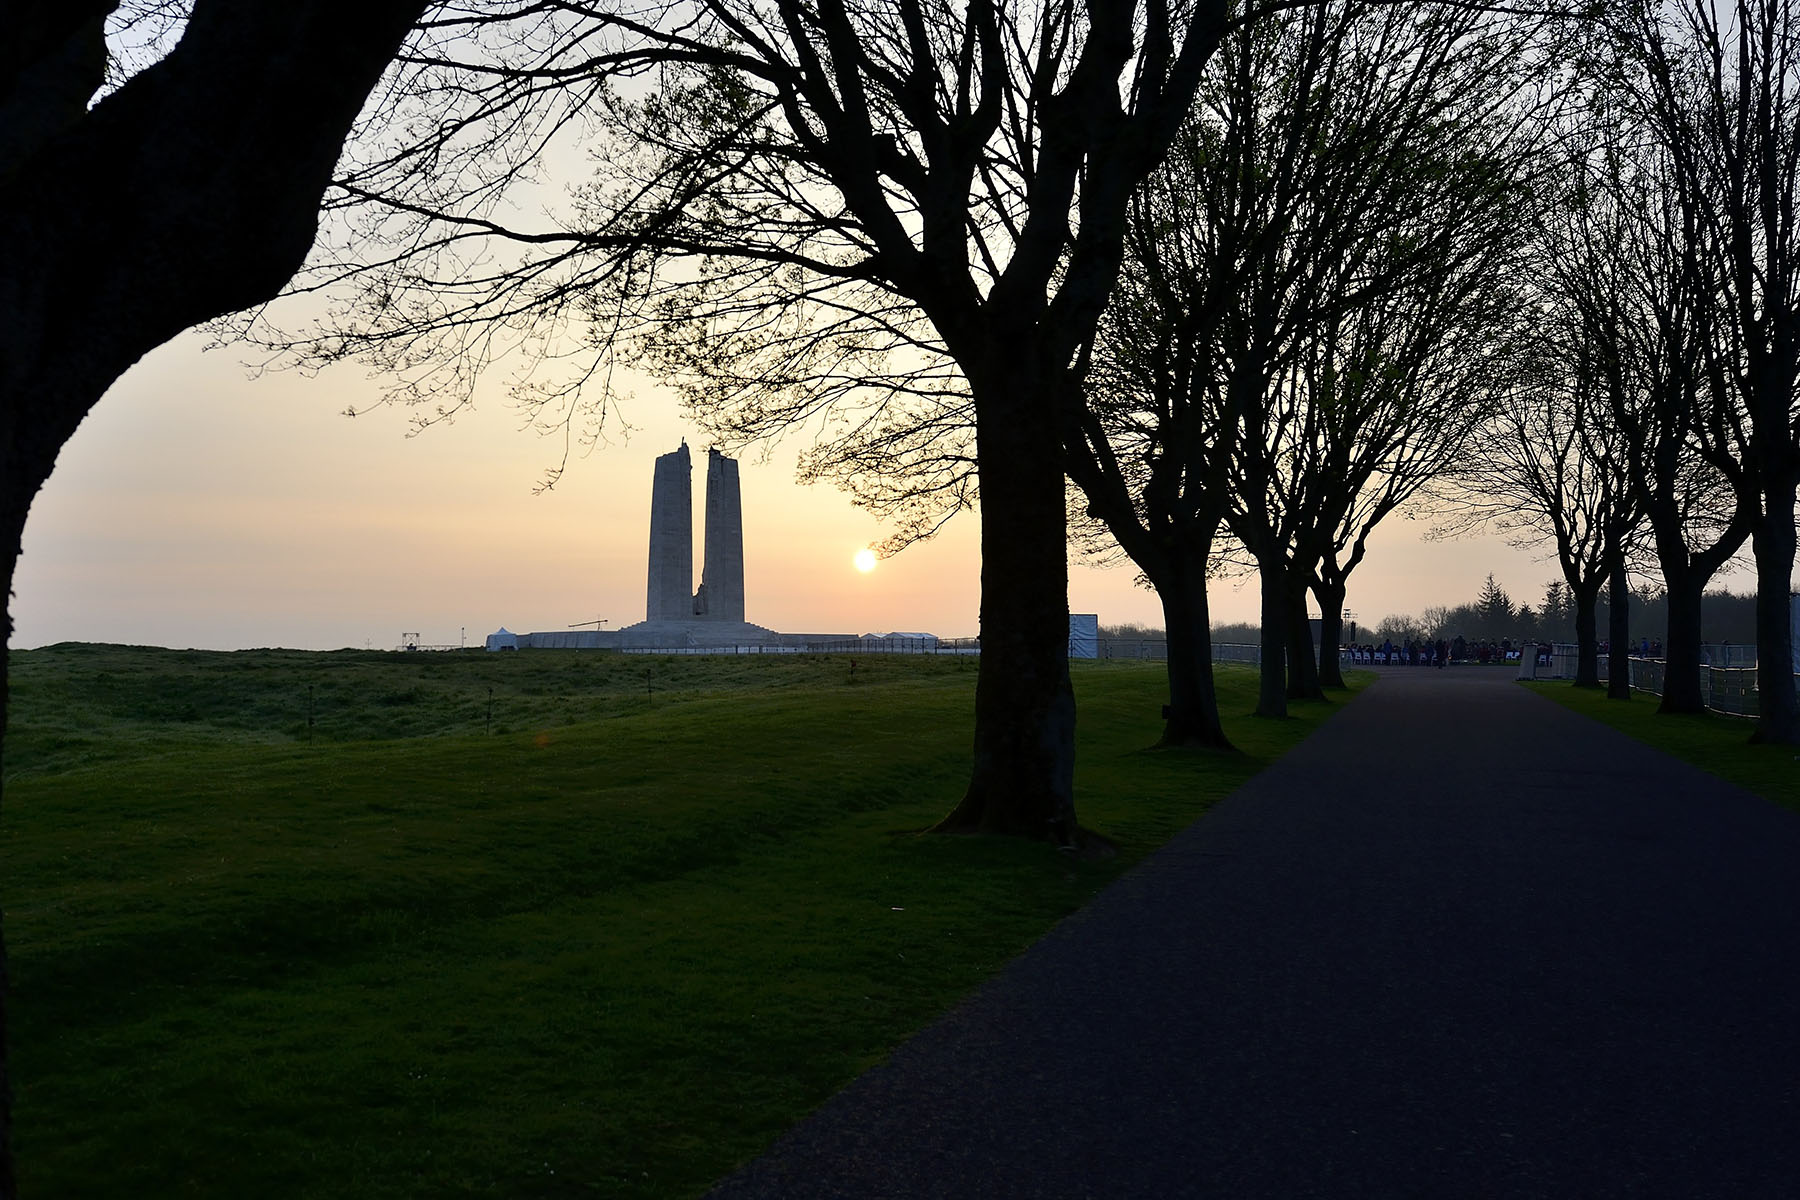 Their Excellencies attended an Indigenous sunrise ceremony at the Canadian National Vimy Memorial. It featured ritualistic acts such as smudging, singing and dancing.